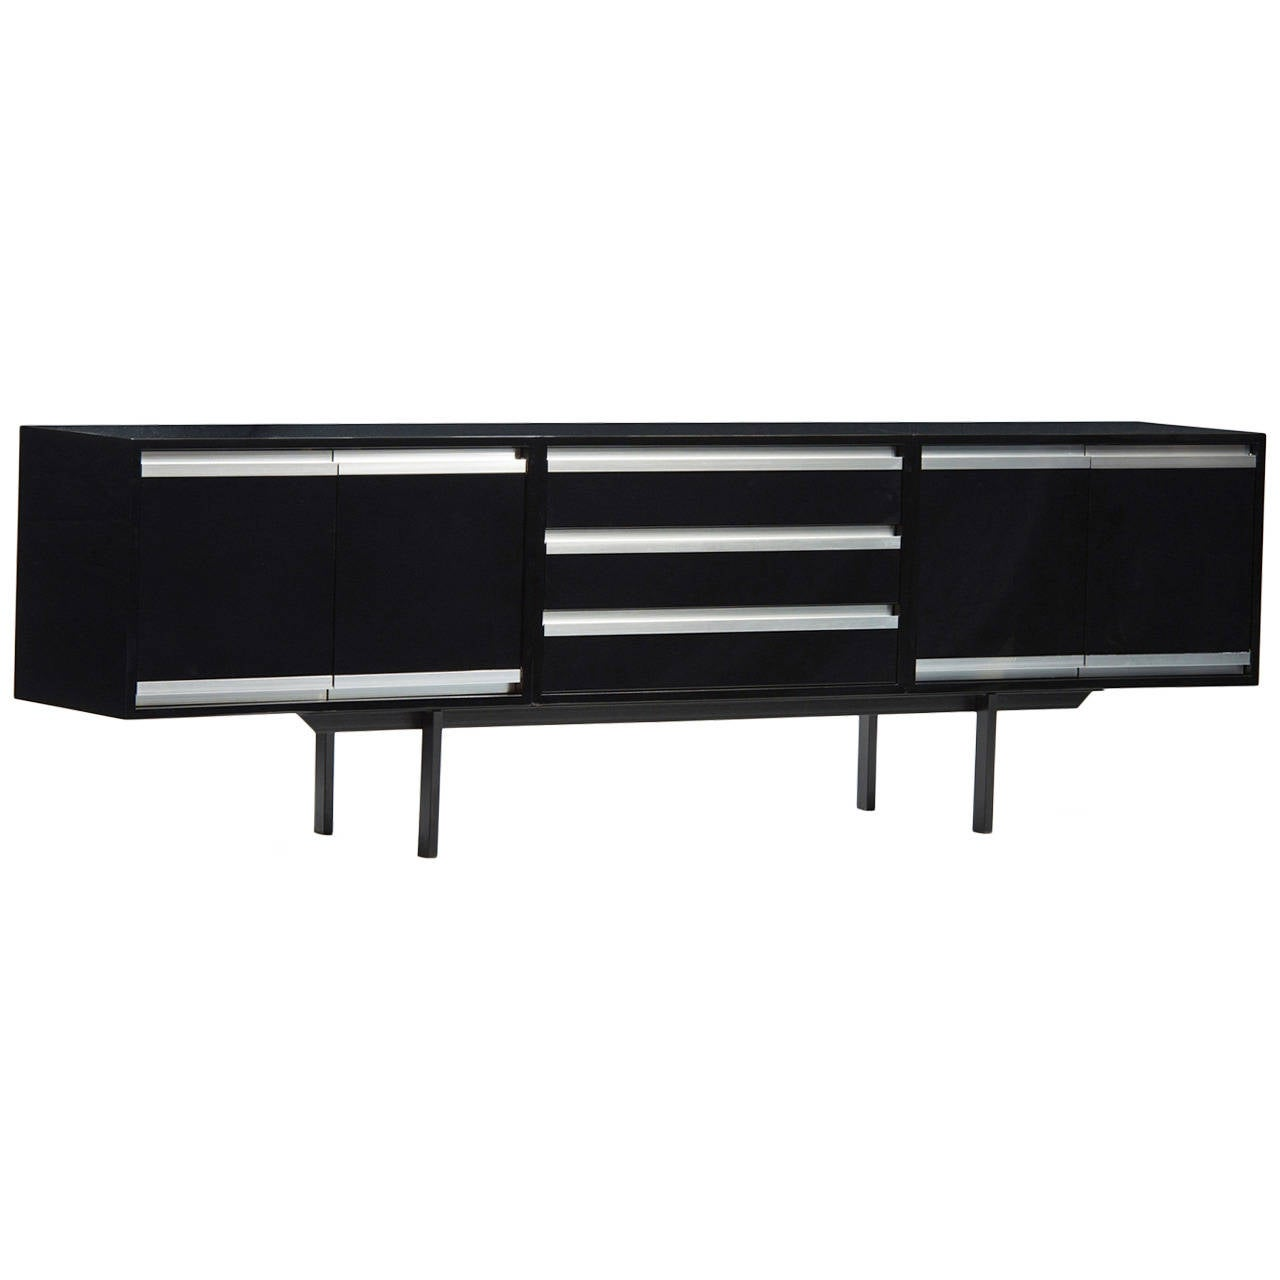 ligne roset sideboard at 1stdibs. Black Bedroom Furniture Sets. Home Design Ideas